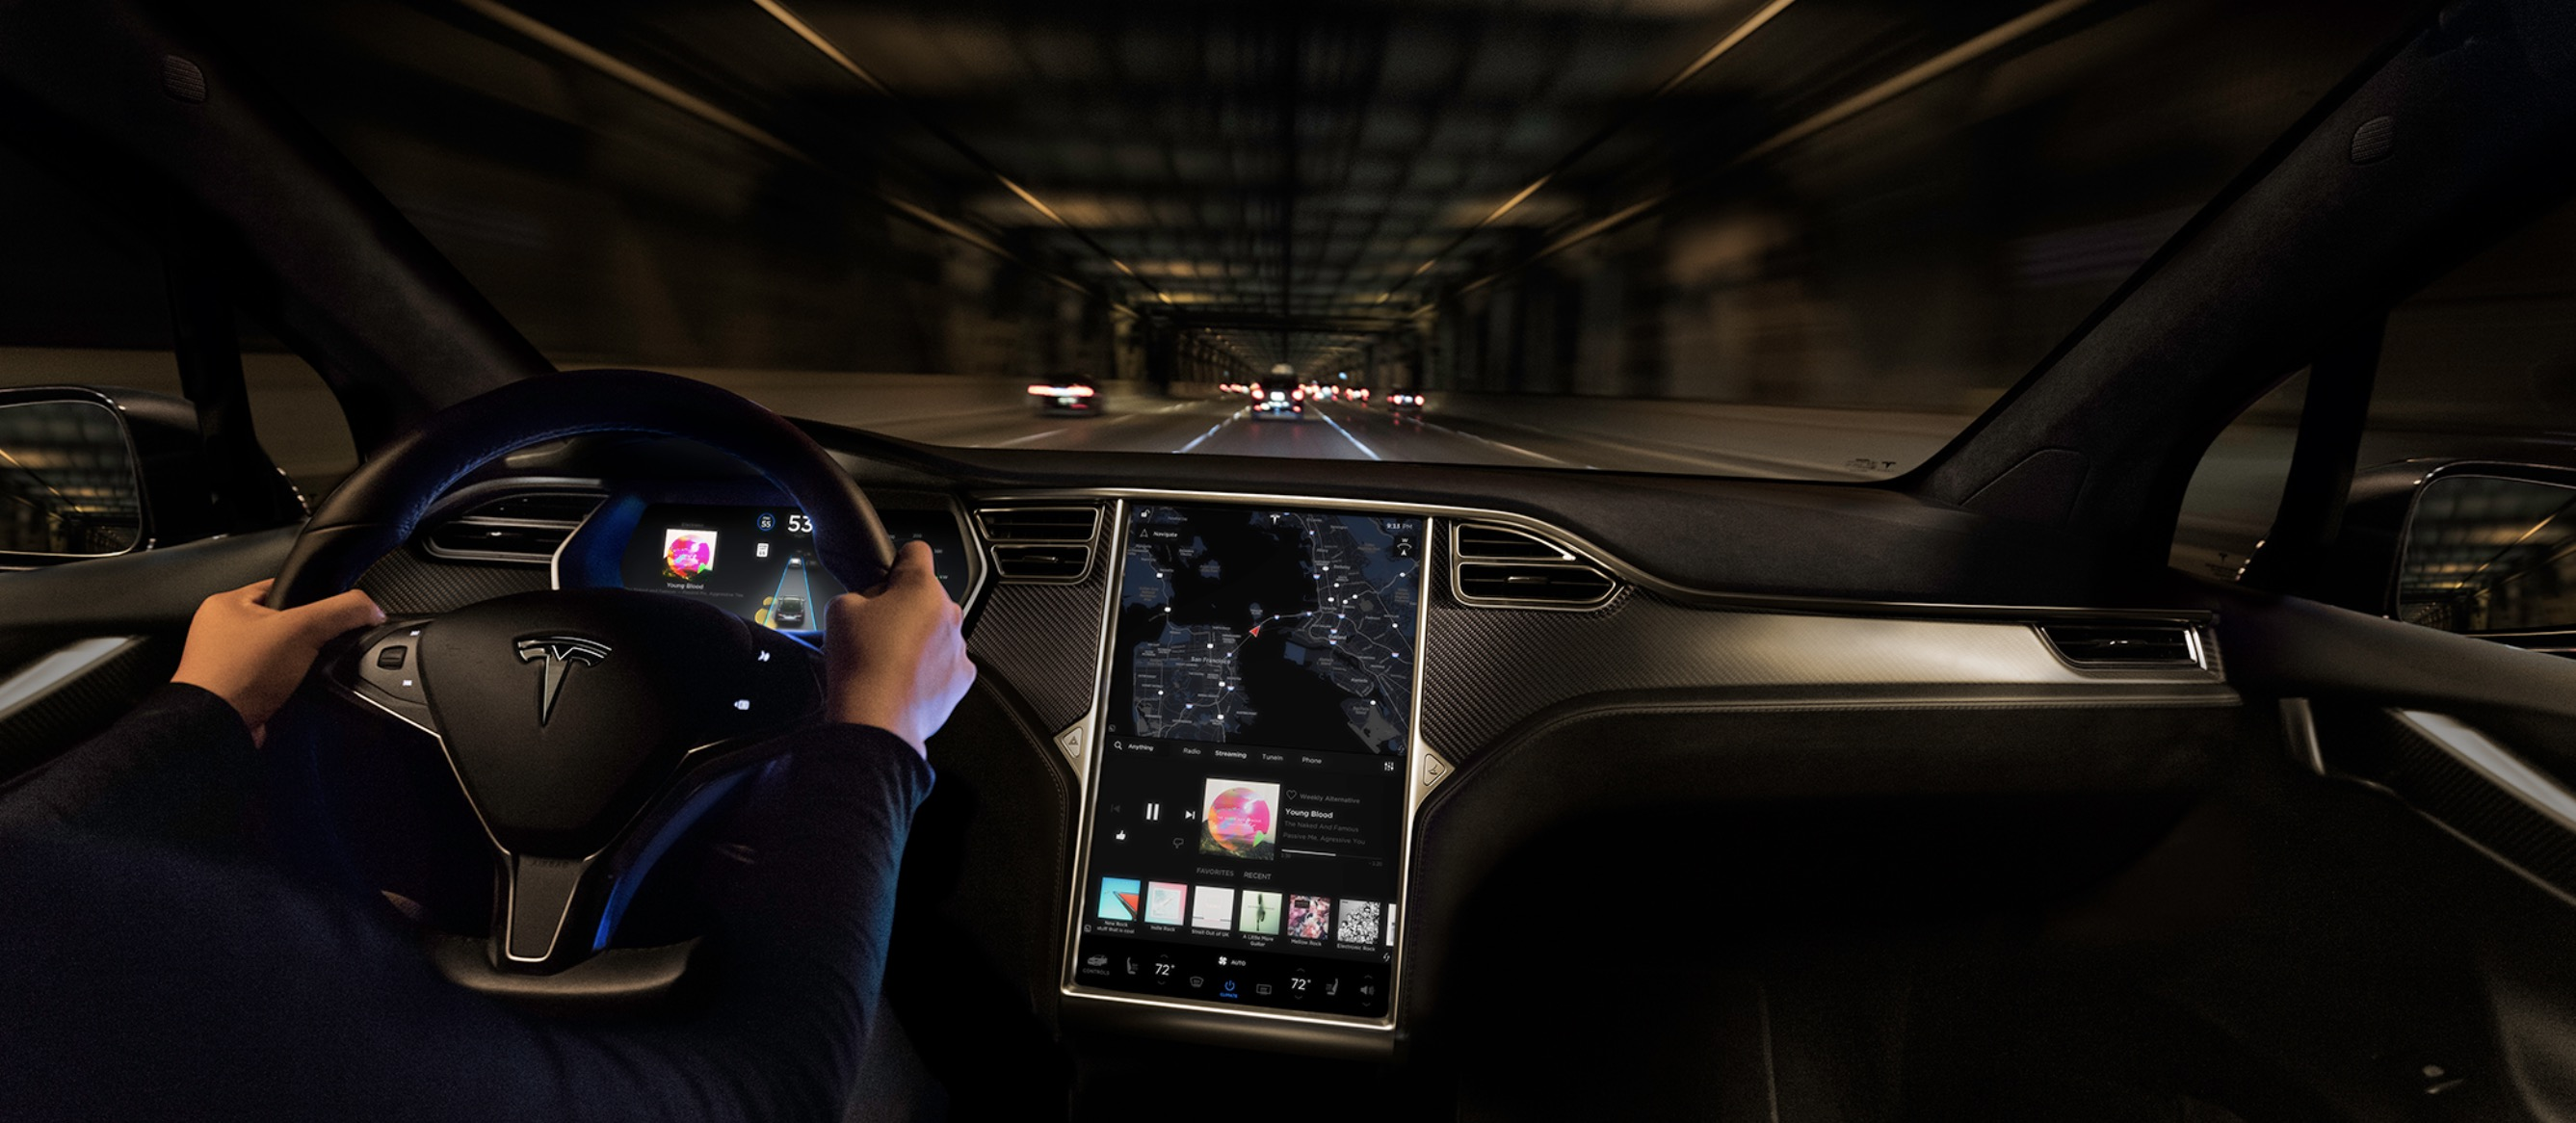 Tesla is introducing new paid 'premium connectivity' package to support in-car internet features of growing fleet